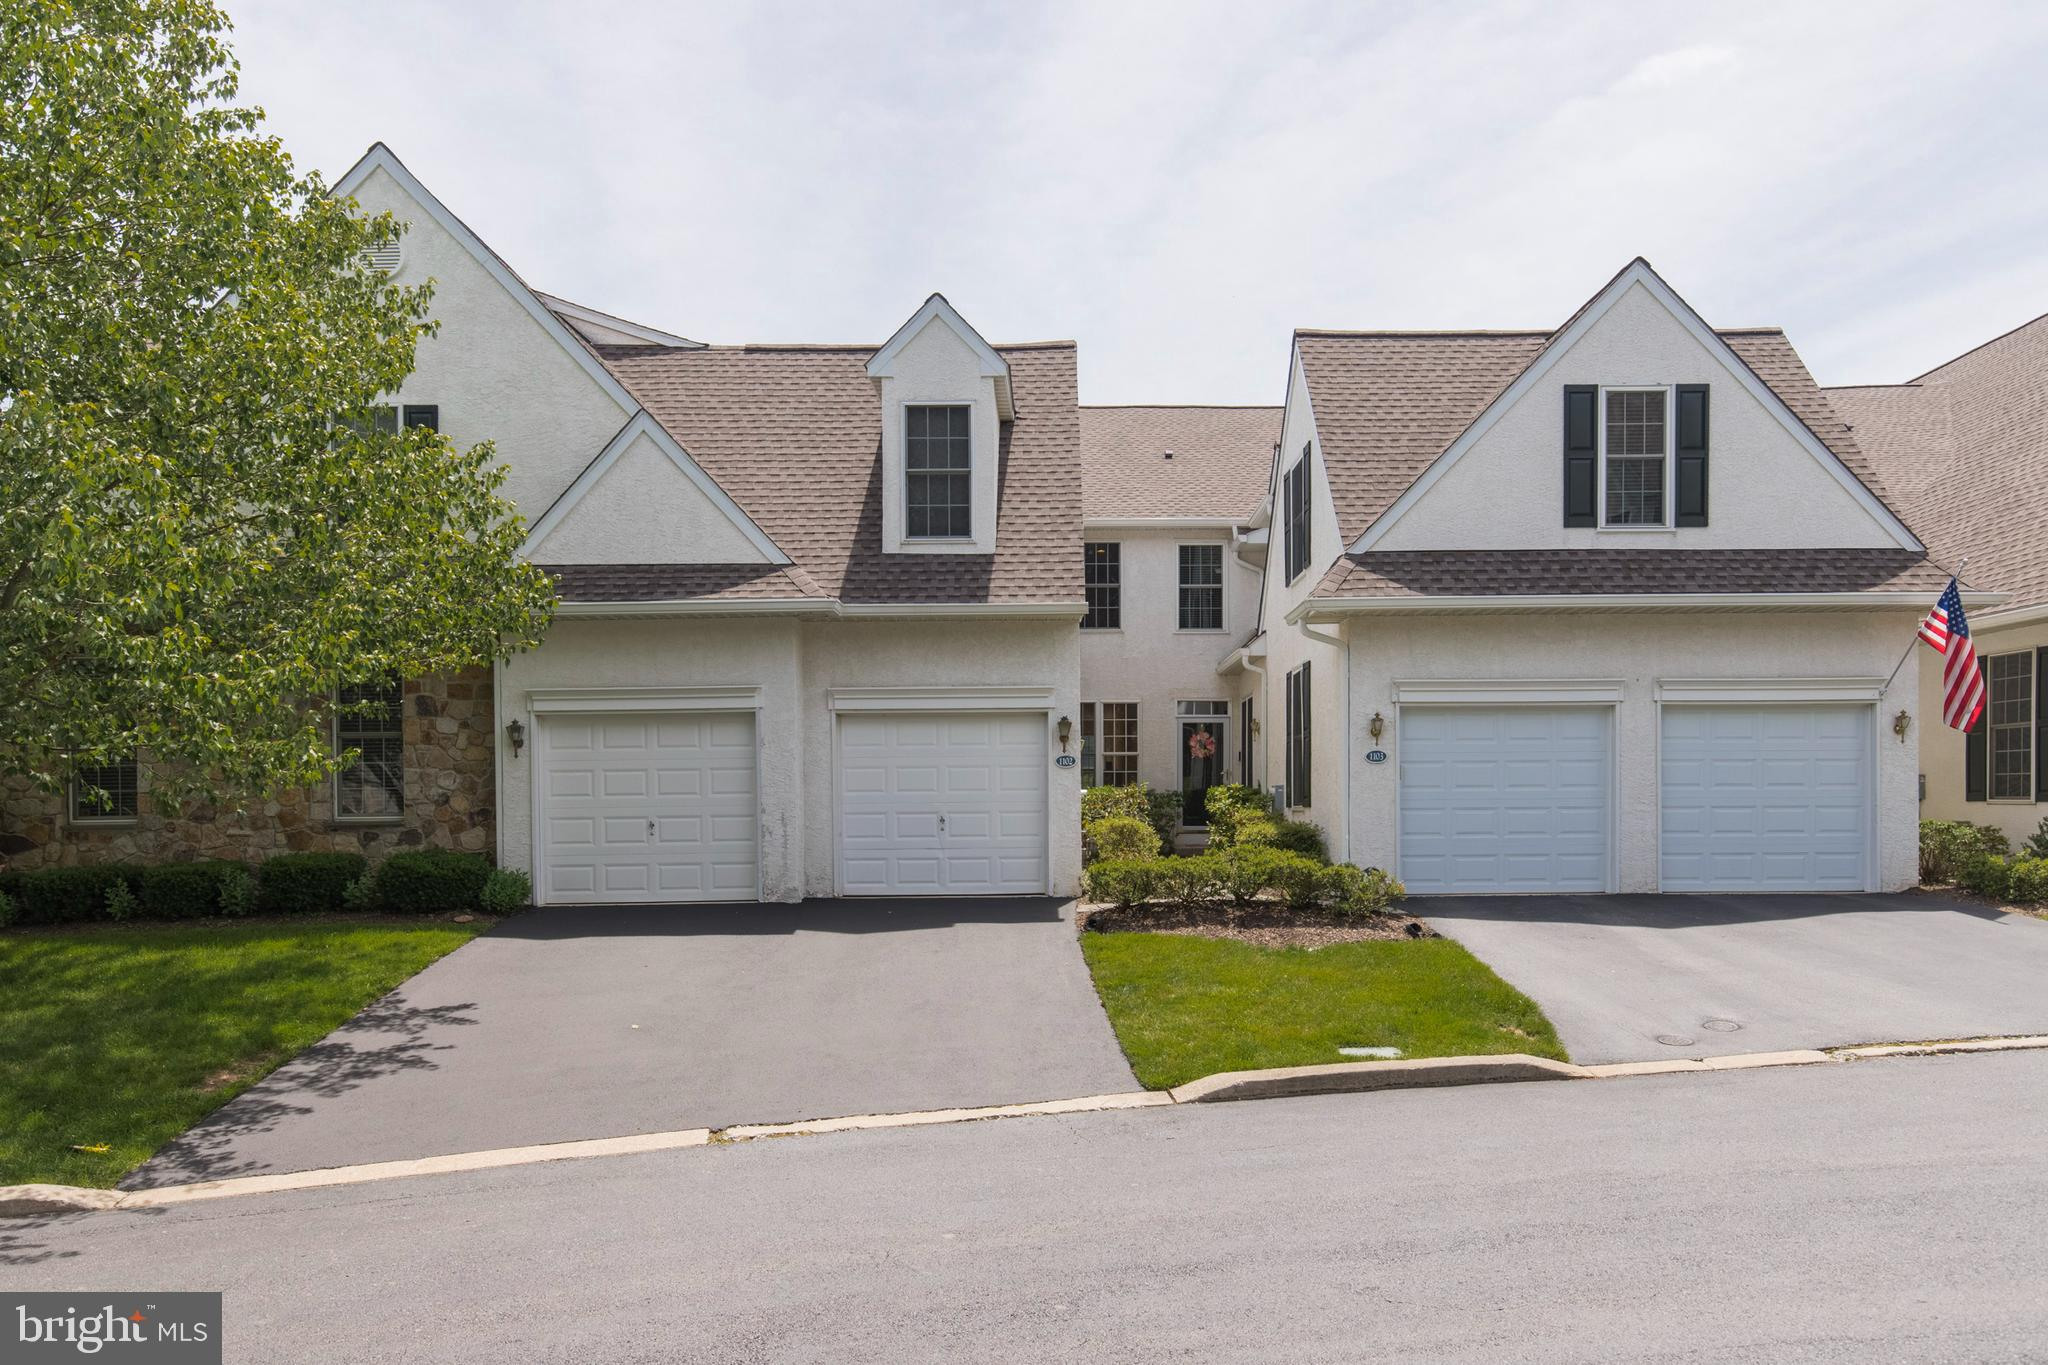 """Nestled in the highly sought-after community of Penns Preserve. This beautiful Townhome is set on a picturesque lot, offers 3 Bedrooms, 3 full Baths plus, a Powder Room. Set in a peaceful location, backing up to the slightly wooded open space & surrounded by 37 Acres of preserved land.  You will love the open floor plan of this fabulous home. The modified floor plan boasts a 20' x 17' stunning white Kitchen! Enter the Foyer, glistening hardwood floors catch your eye. Double glass doors open to the Dining Room, featuring built-in server with granite countertop & glass display cabinets. There is an easy flow from Dining Room to Living Room,  perfect for entertaining a large crowd.  Enjoy a cozy evening by the fireplace in the Living Room which opens out to the Deck.  Step out on the oversized deck to Dine Al Fresco, while enjoying this nature lovers retreat. A wall of windows overlooking the picturesque grounds is simply stunning.  Spacious Breakfast Room offers the same view. The bright white Kitchen boasts white 42"""" cabinets with Corian counters and a tile backsplash.  The appliances include, gas range (every chef's preference), microwave, dishwasher, garbage disposal & refrigerator. A large Buter's Pantry & Convenient Powder Room complete this level.   An abundance of large windows & recessed lights brightens each room in this wonderful home. Step down a few steps to the Finished Walkout Lower Level. Plenty of extra entertainment and living space here! Gas Fireplace will create atmosphere! Friends & Family will gather around the Wet Bar before venturing out to Deck. A separate room is perfect spot for a home office, gym, or guest room. The full Bathroom adds convenience. The 2nd Floor houses the Master Bedroom Suite and 2 additional Bedrooms and Bath.  The Master Bedroom Suite is a perfect place to retreat, reflect & rejuvenate! Two organized walk-in closets will make picking an outfit a breeze!  The Master Bath features a double bowl Vanity, Stall Shower & Jacuzzi"""